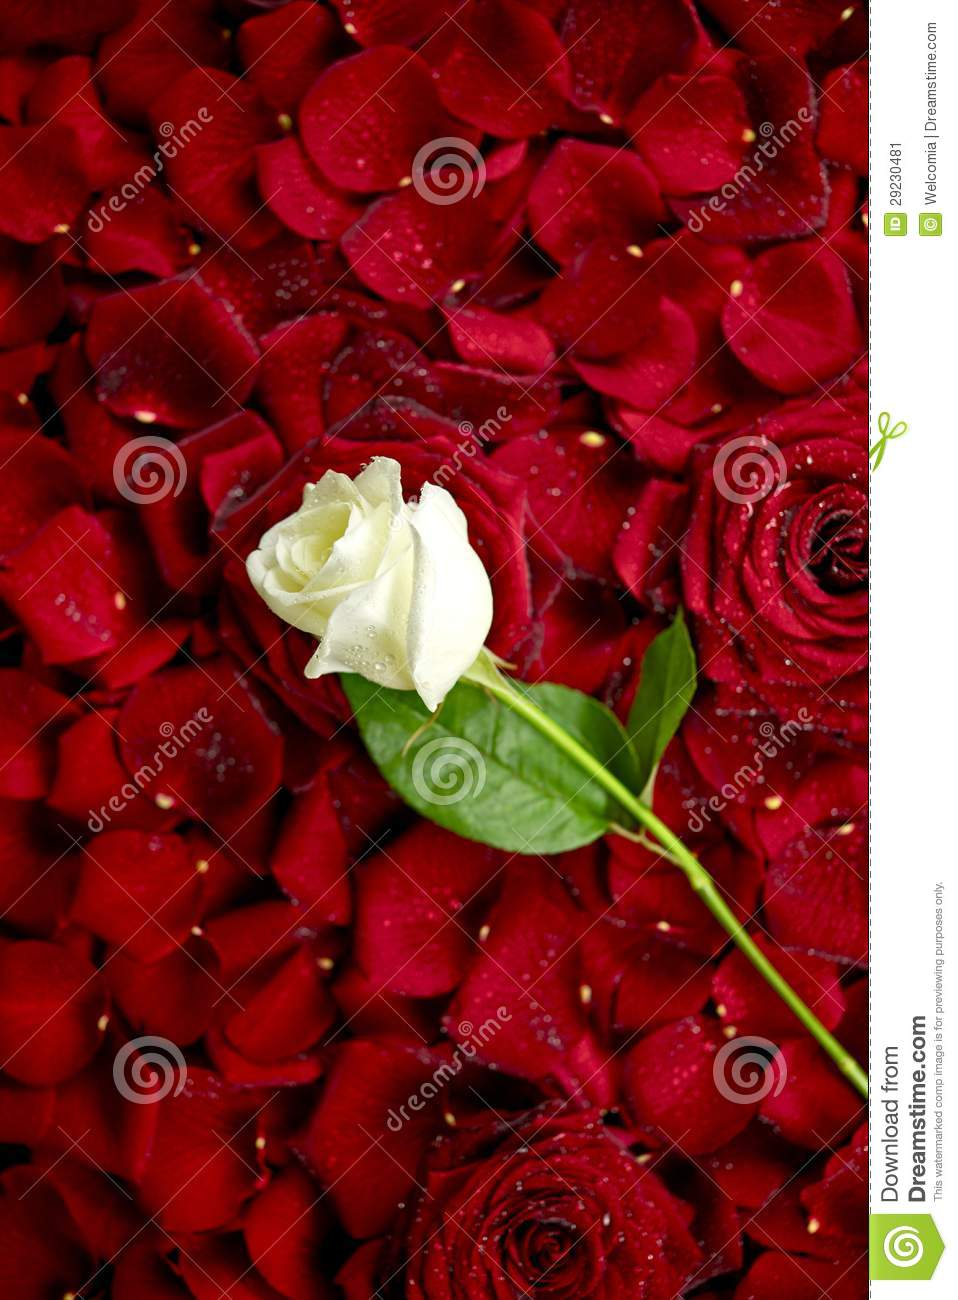 White Rose On Red Petals Stock Image Image Of Petal 29230481